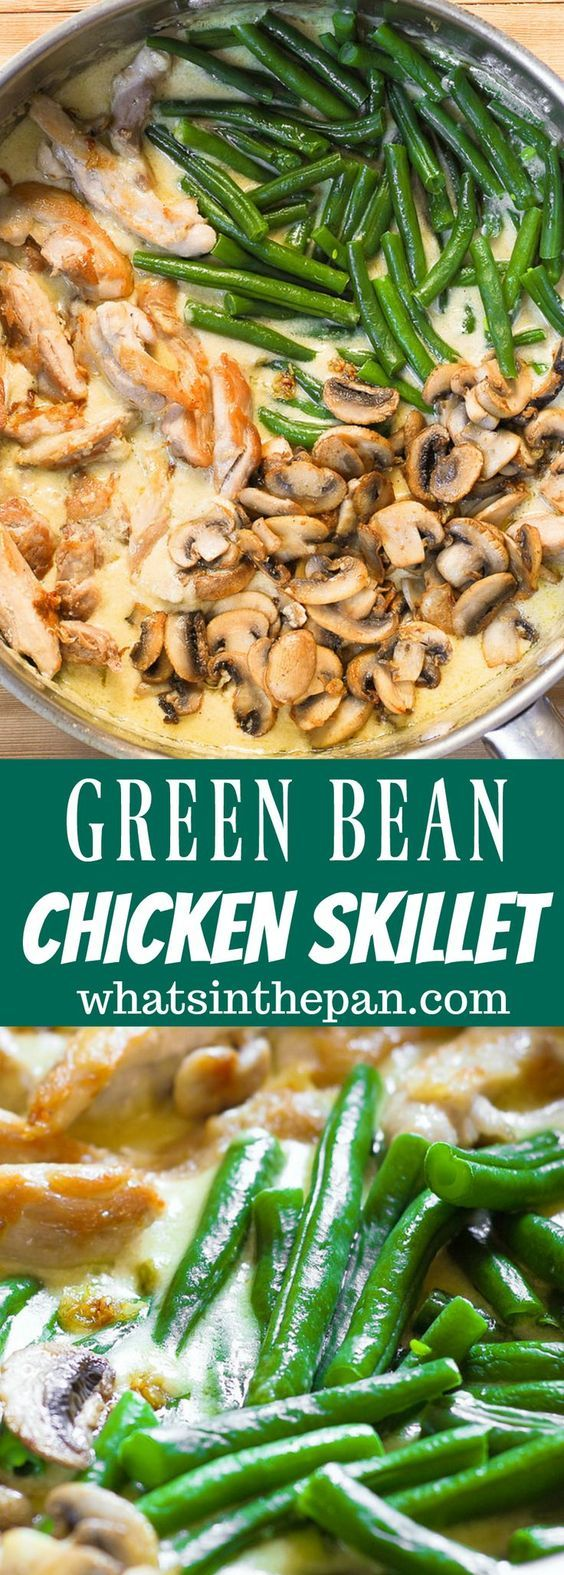 green beans mushroom skillet with chicken in creamy sauce